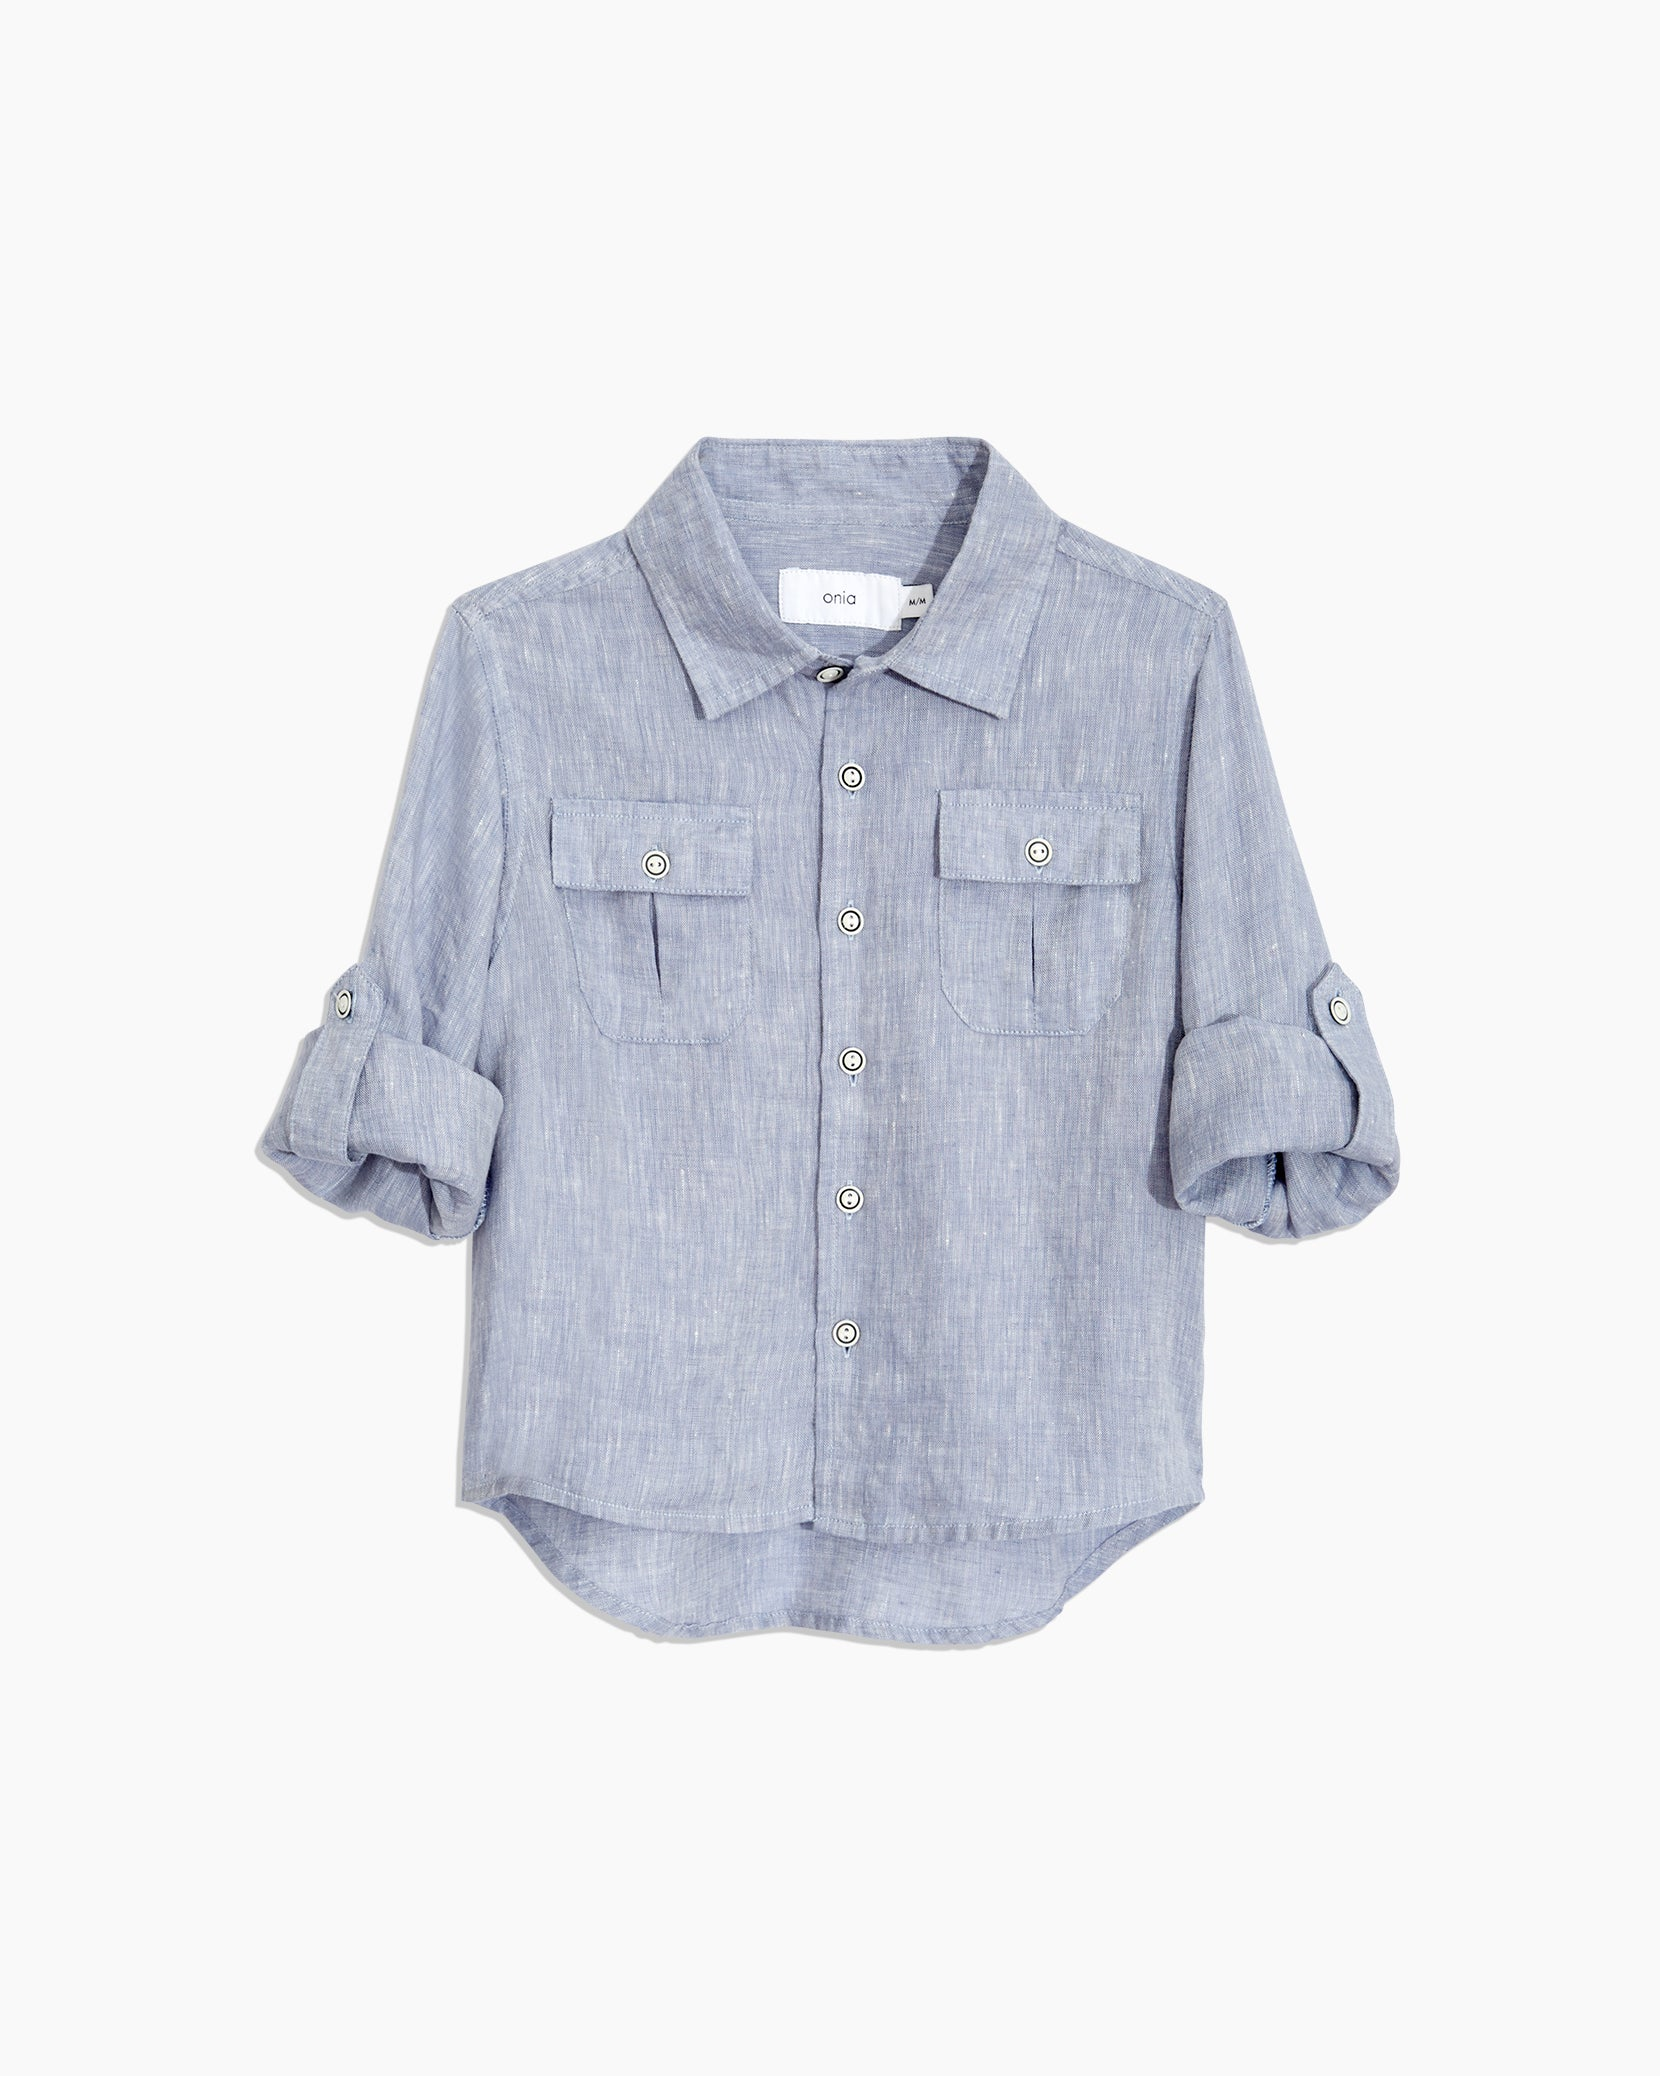 Boys Linen Garret Shirt in Denim - 3 - Onia